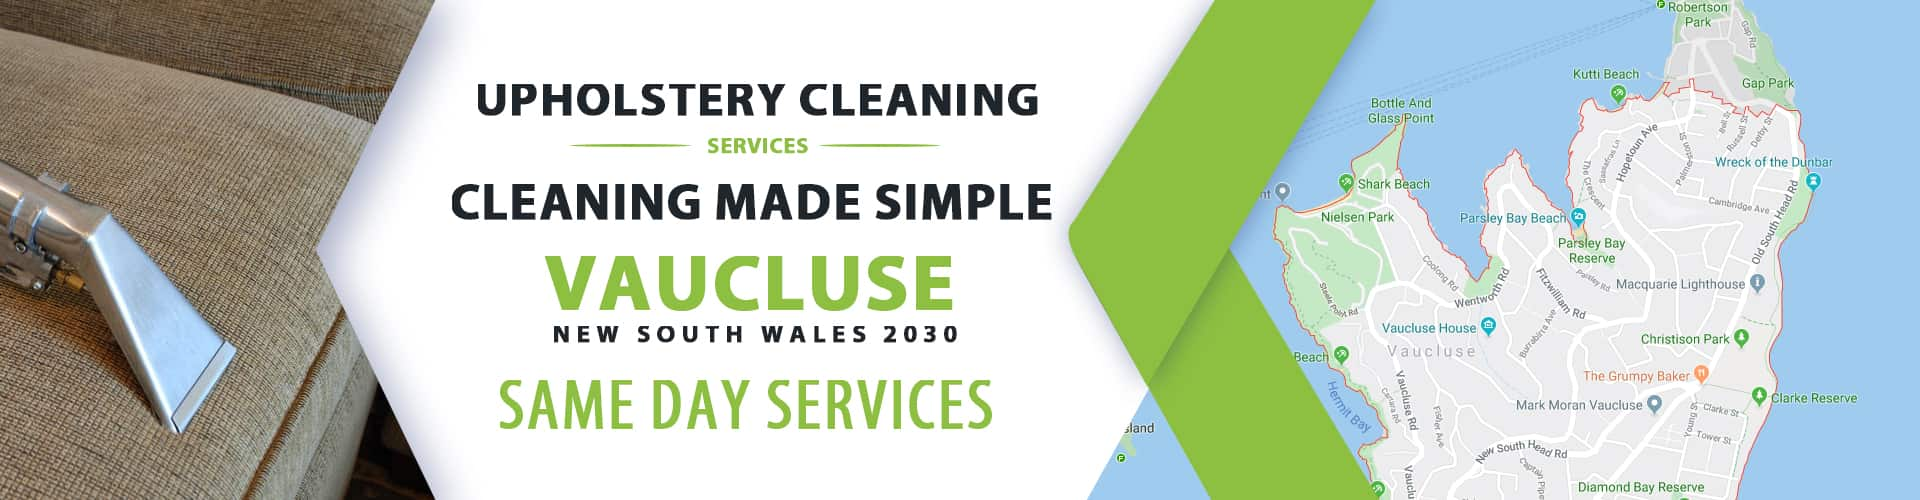 Upholstery Cleaning Vaucluse